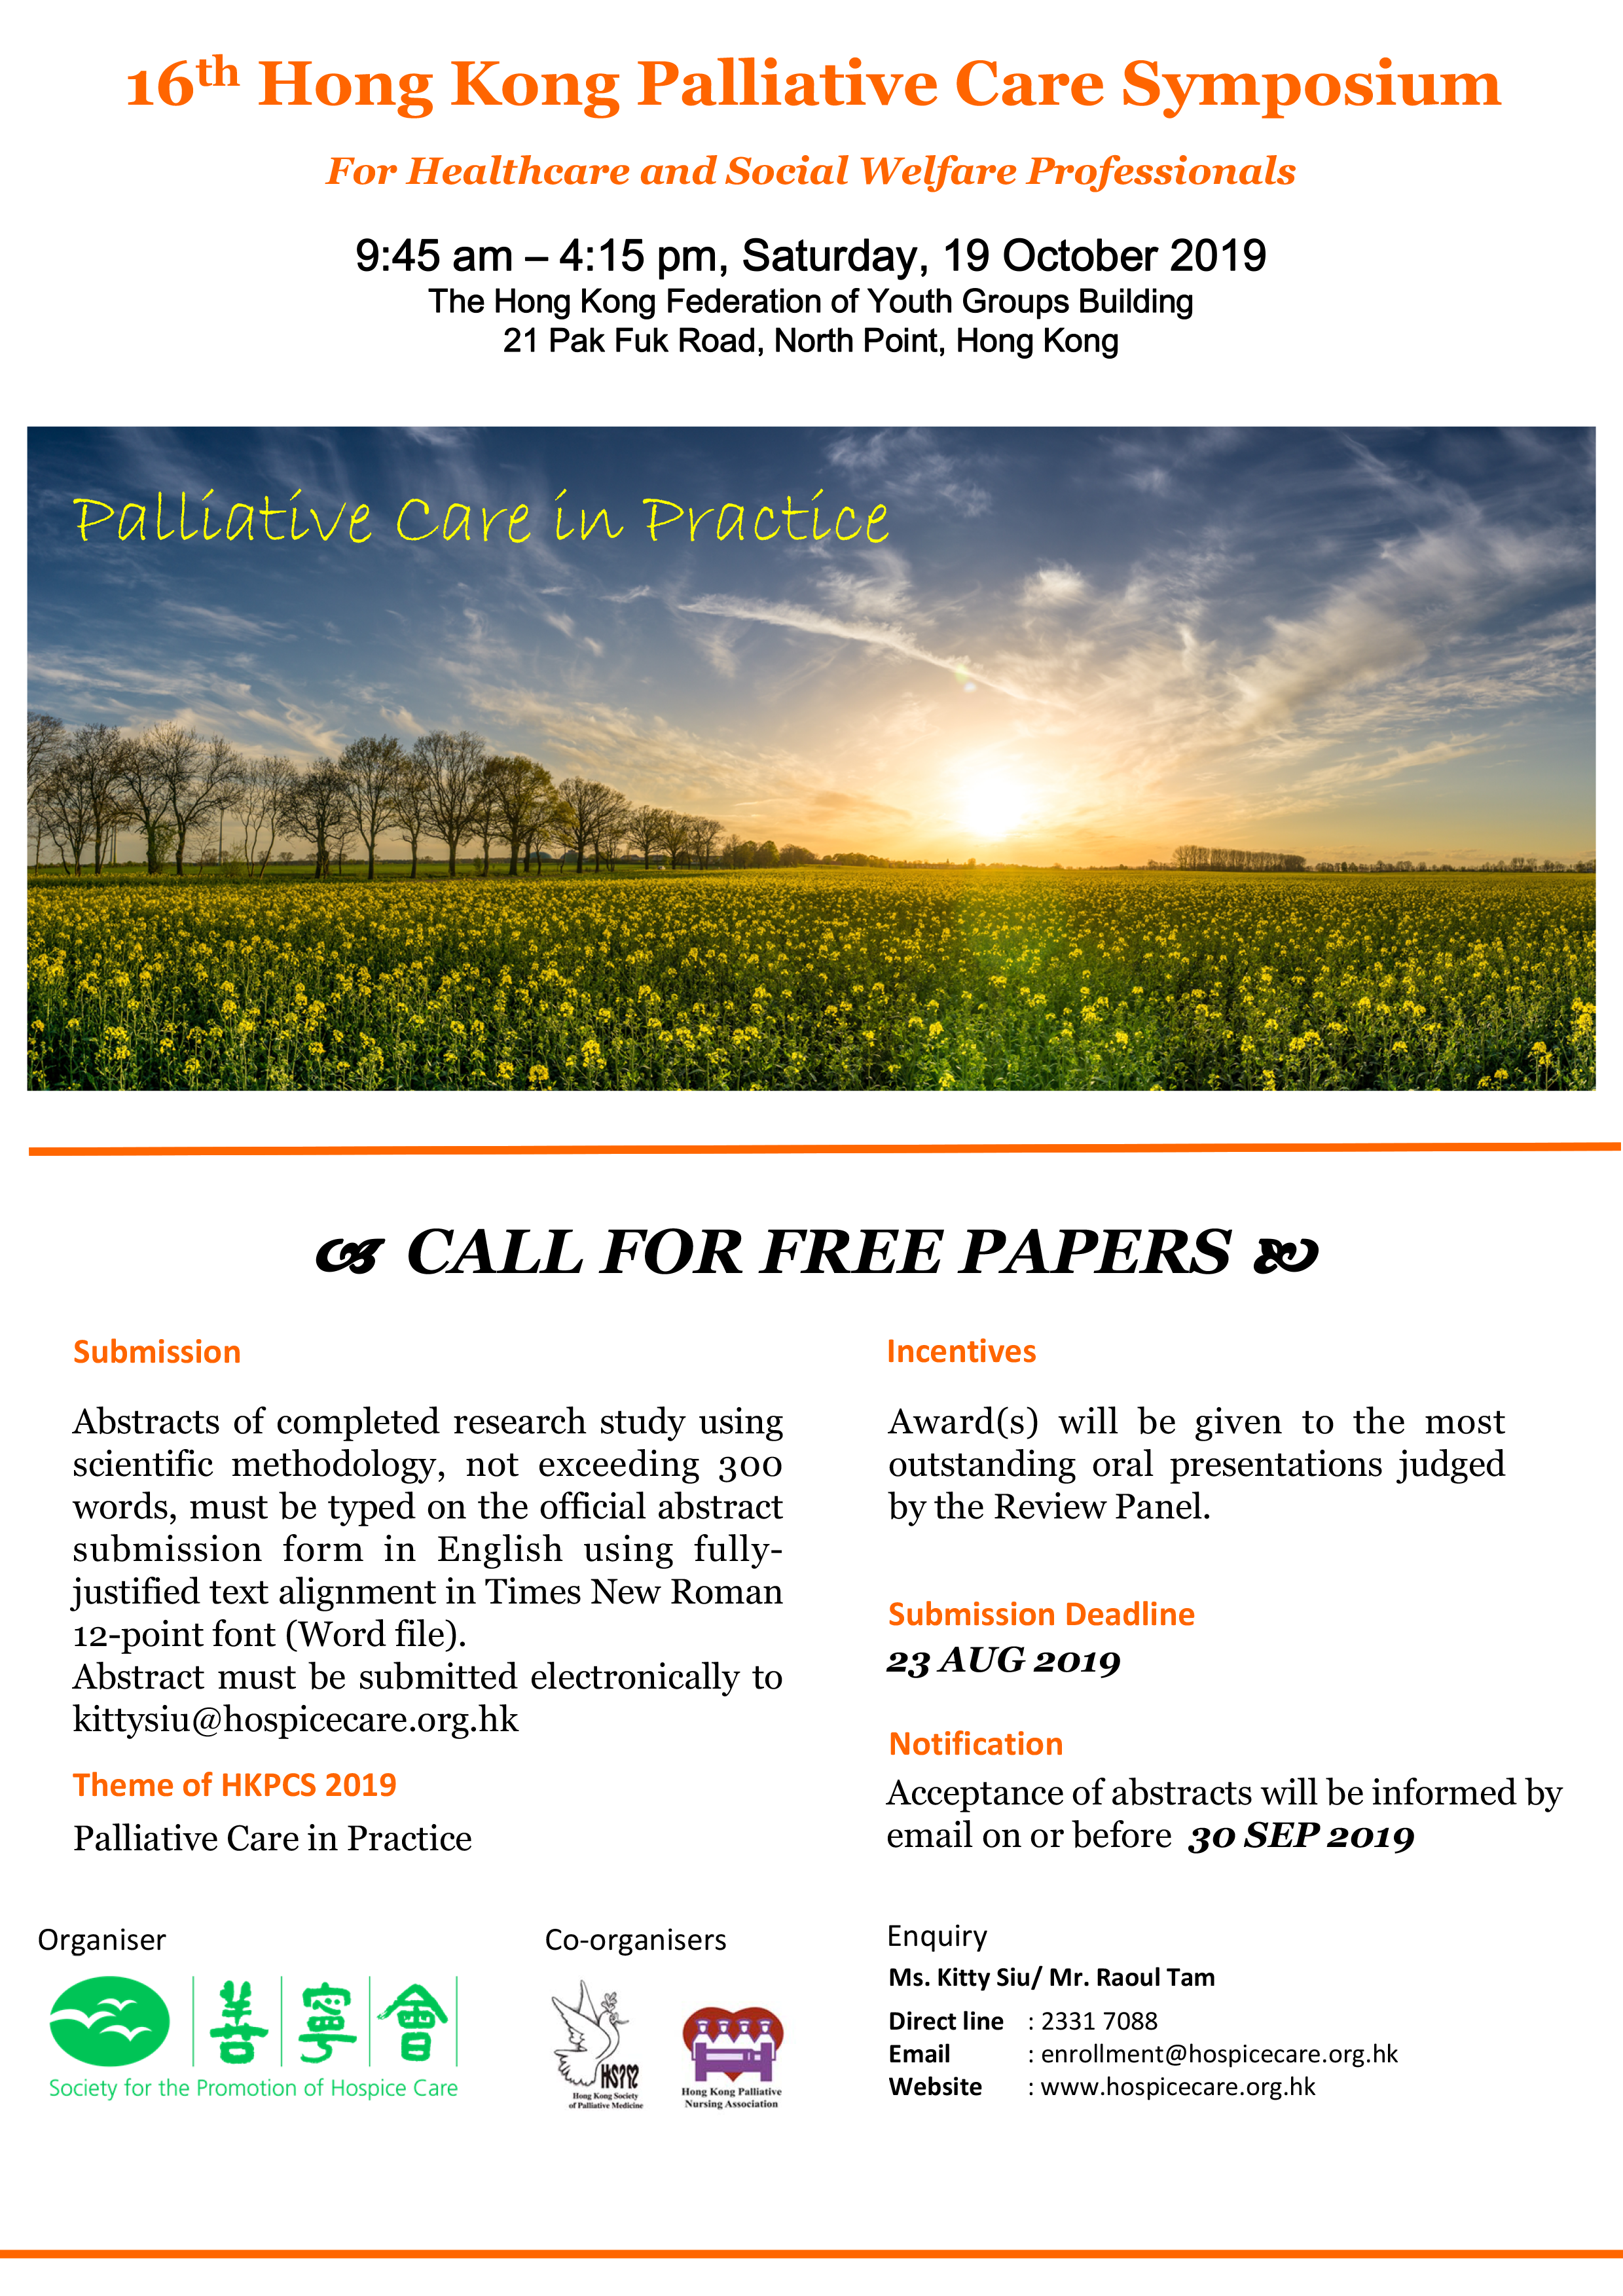 Call for Free Papers